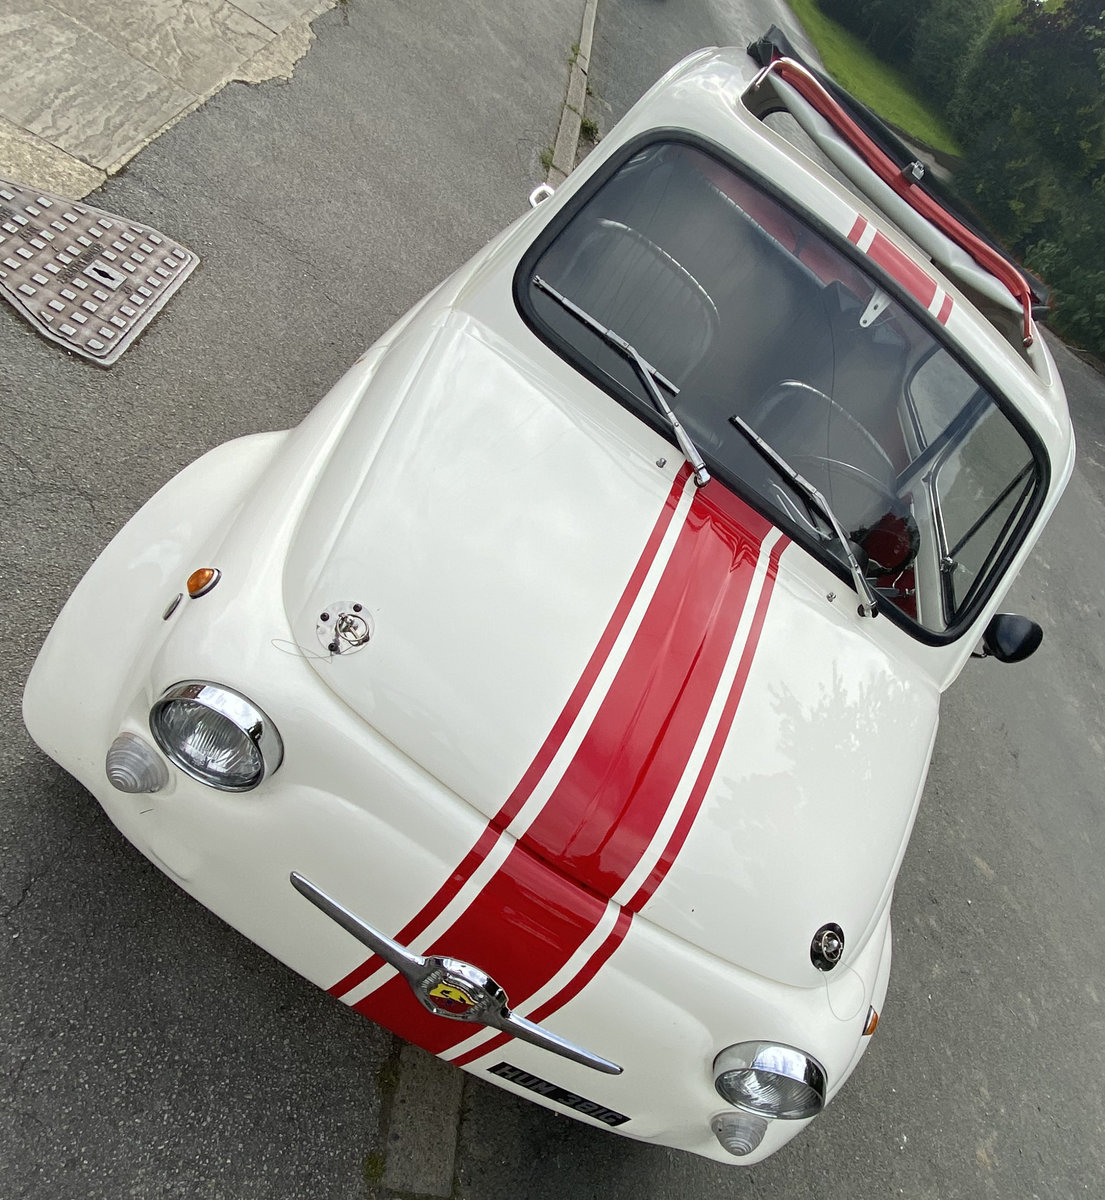 1968 Fiat 500 Abarth For Sale (picture 1 of 6)